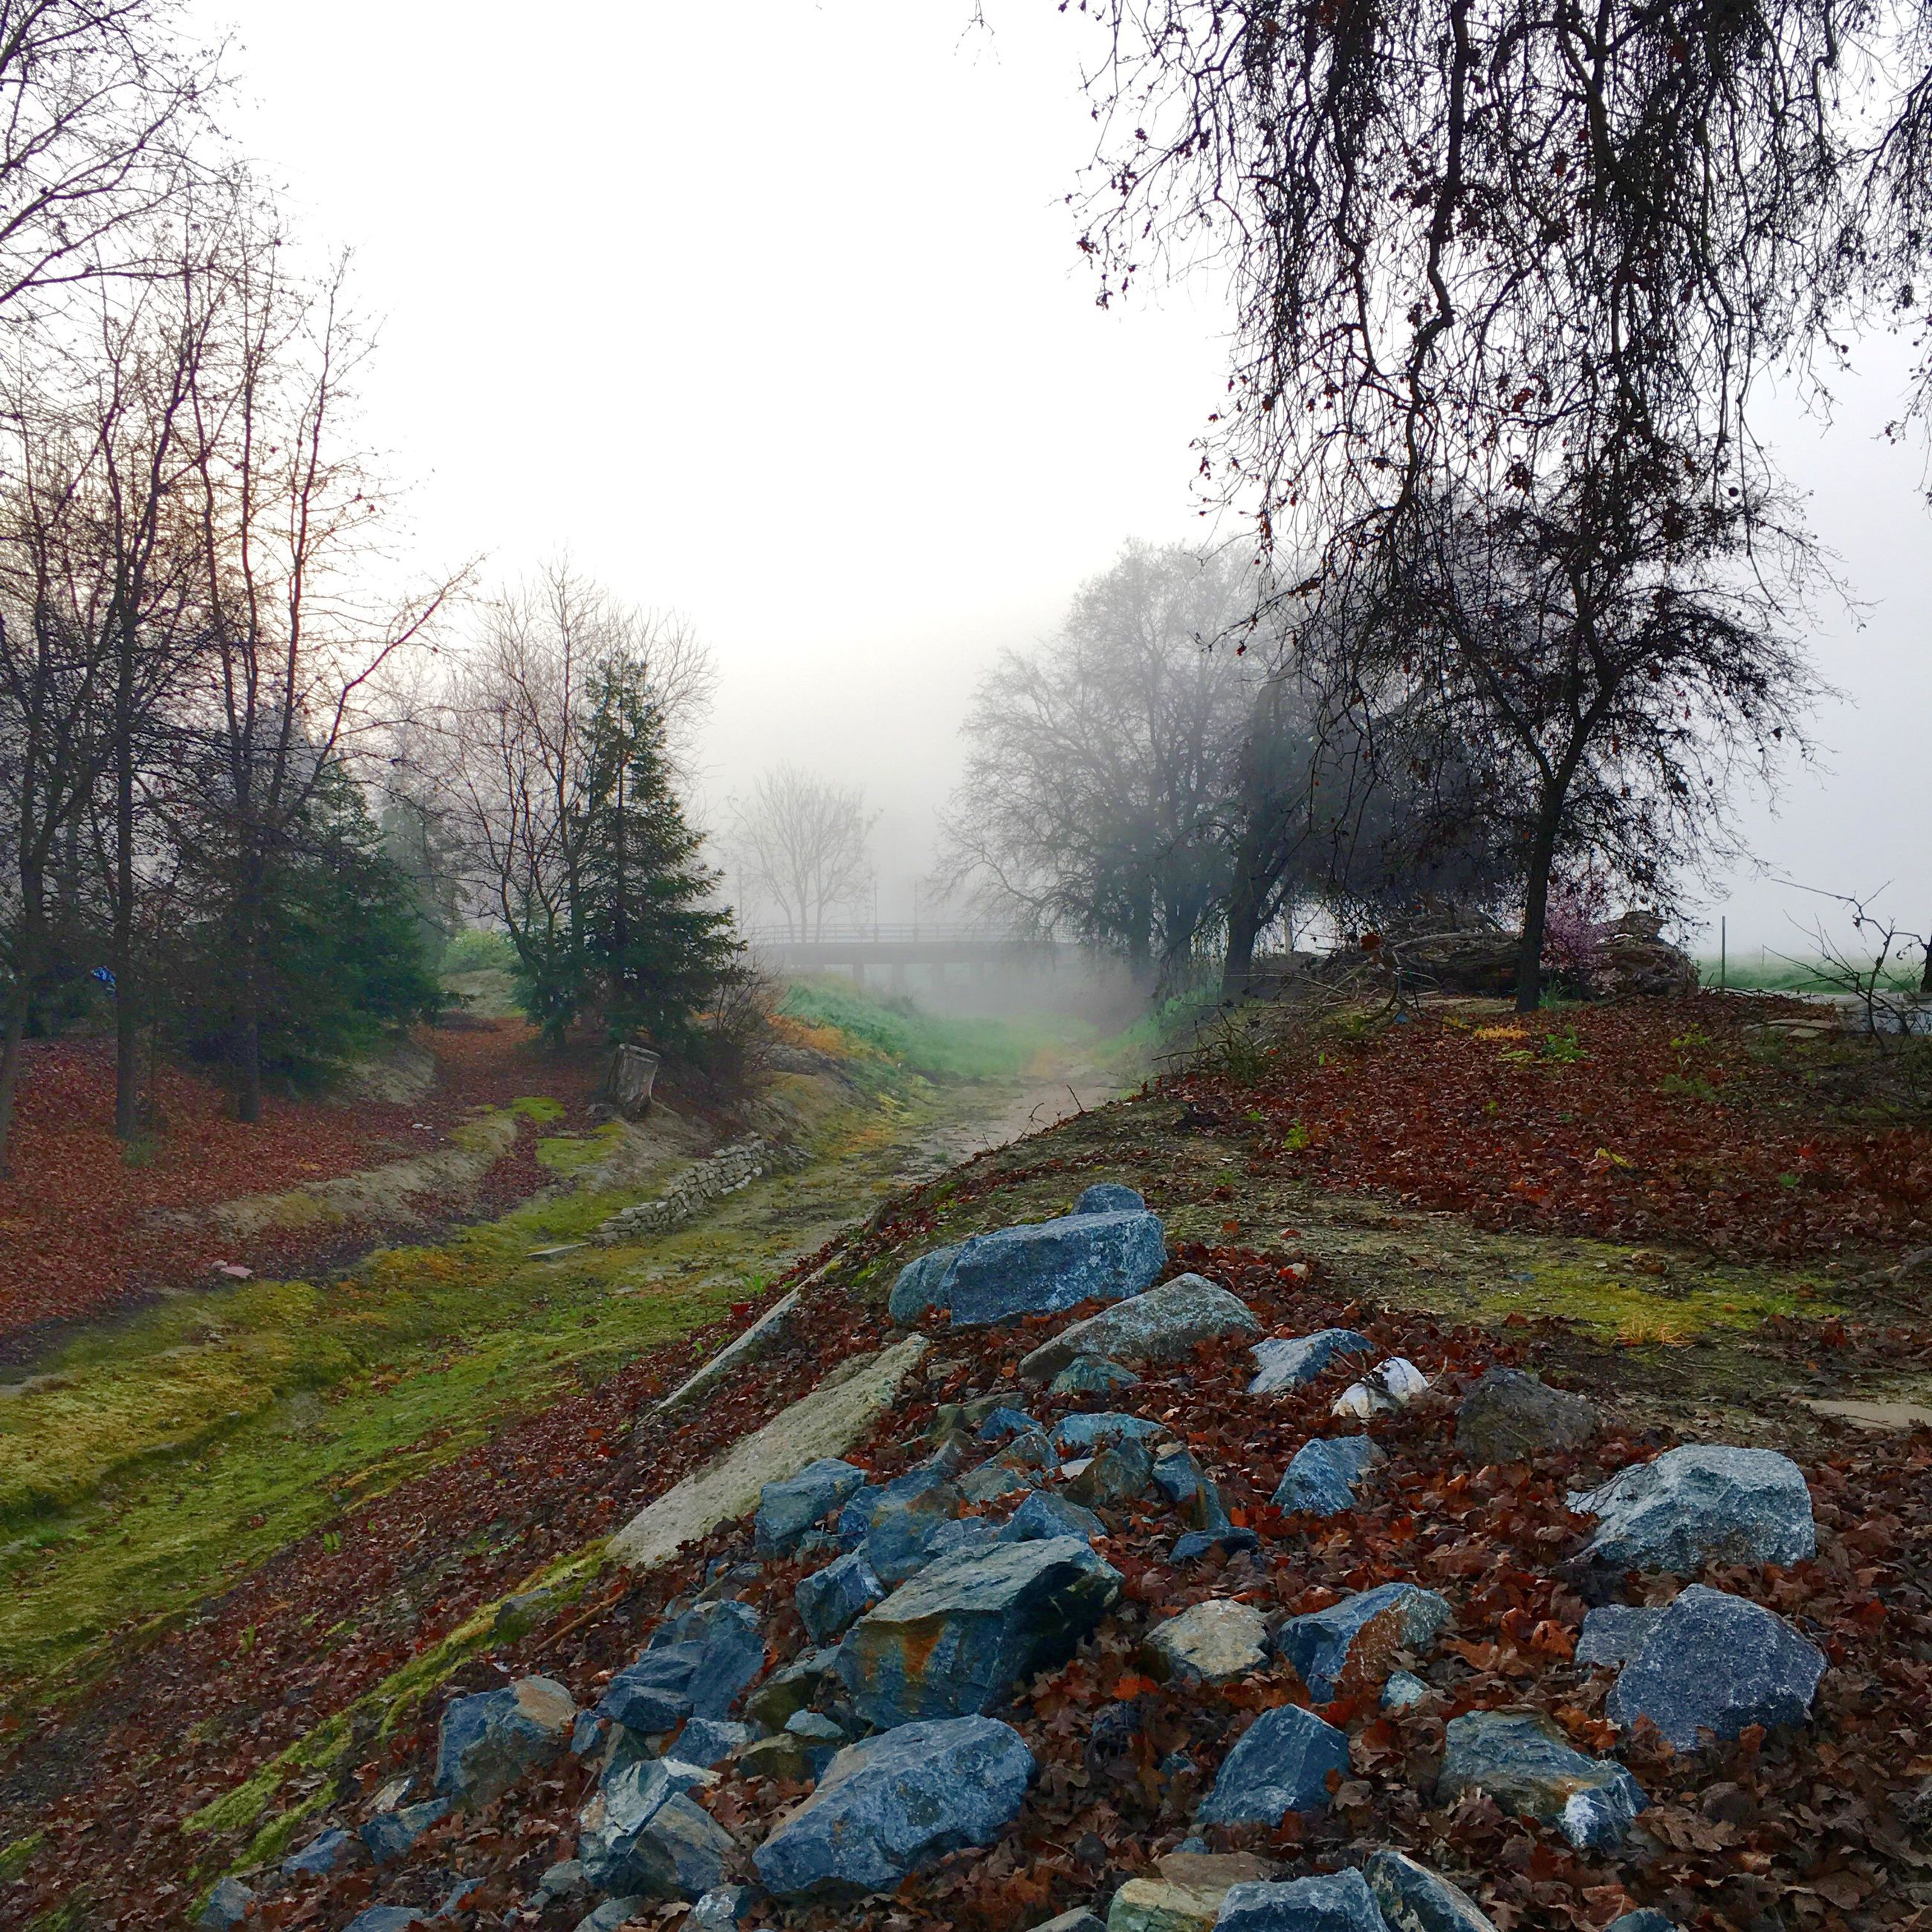 tree, tranquility, tranquil scene, clear sky, landscape, scenics, nature, field, beauty in nature, bare tree, weather, foggy, non-urban scene, grass, sky, season, day, growth, outdoors